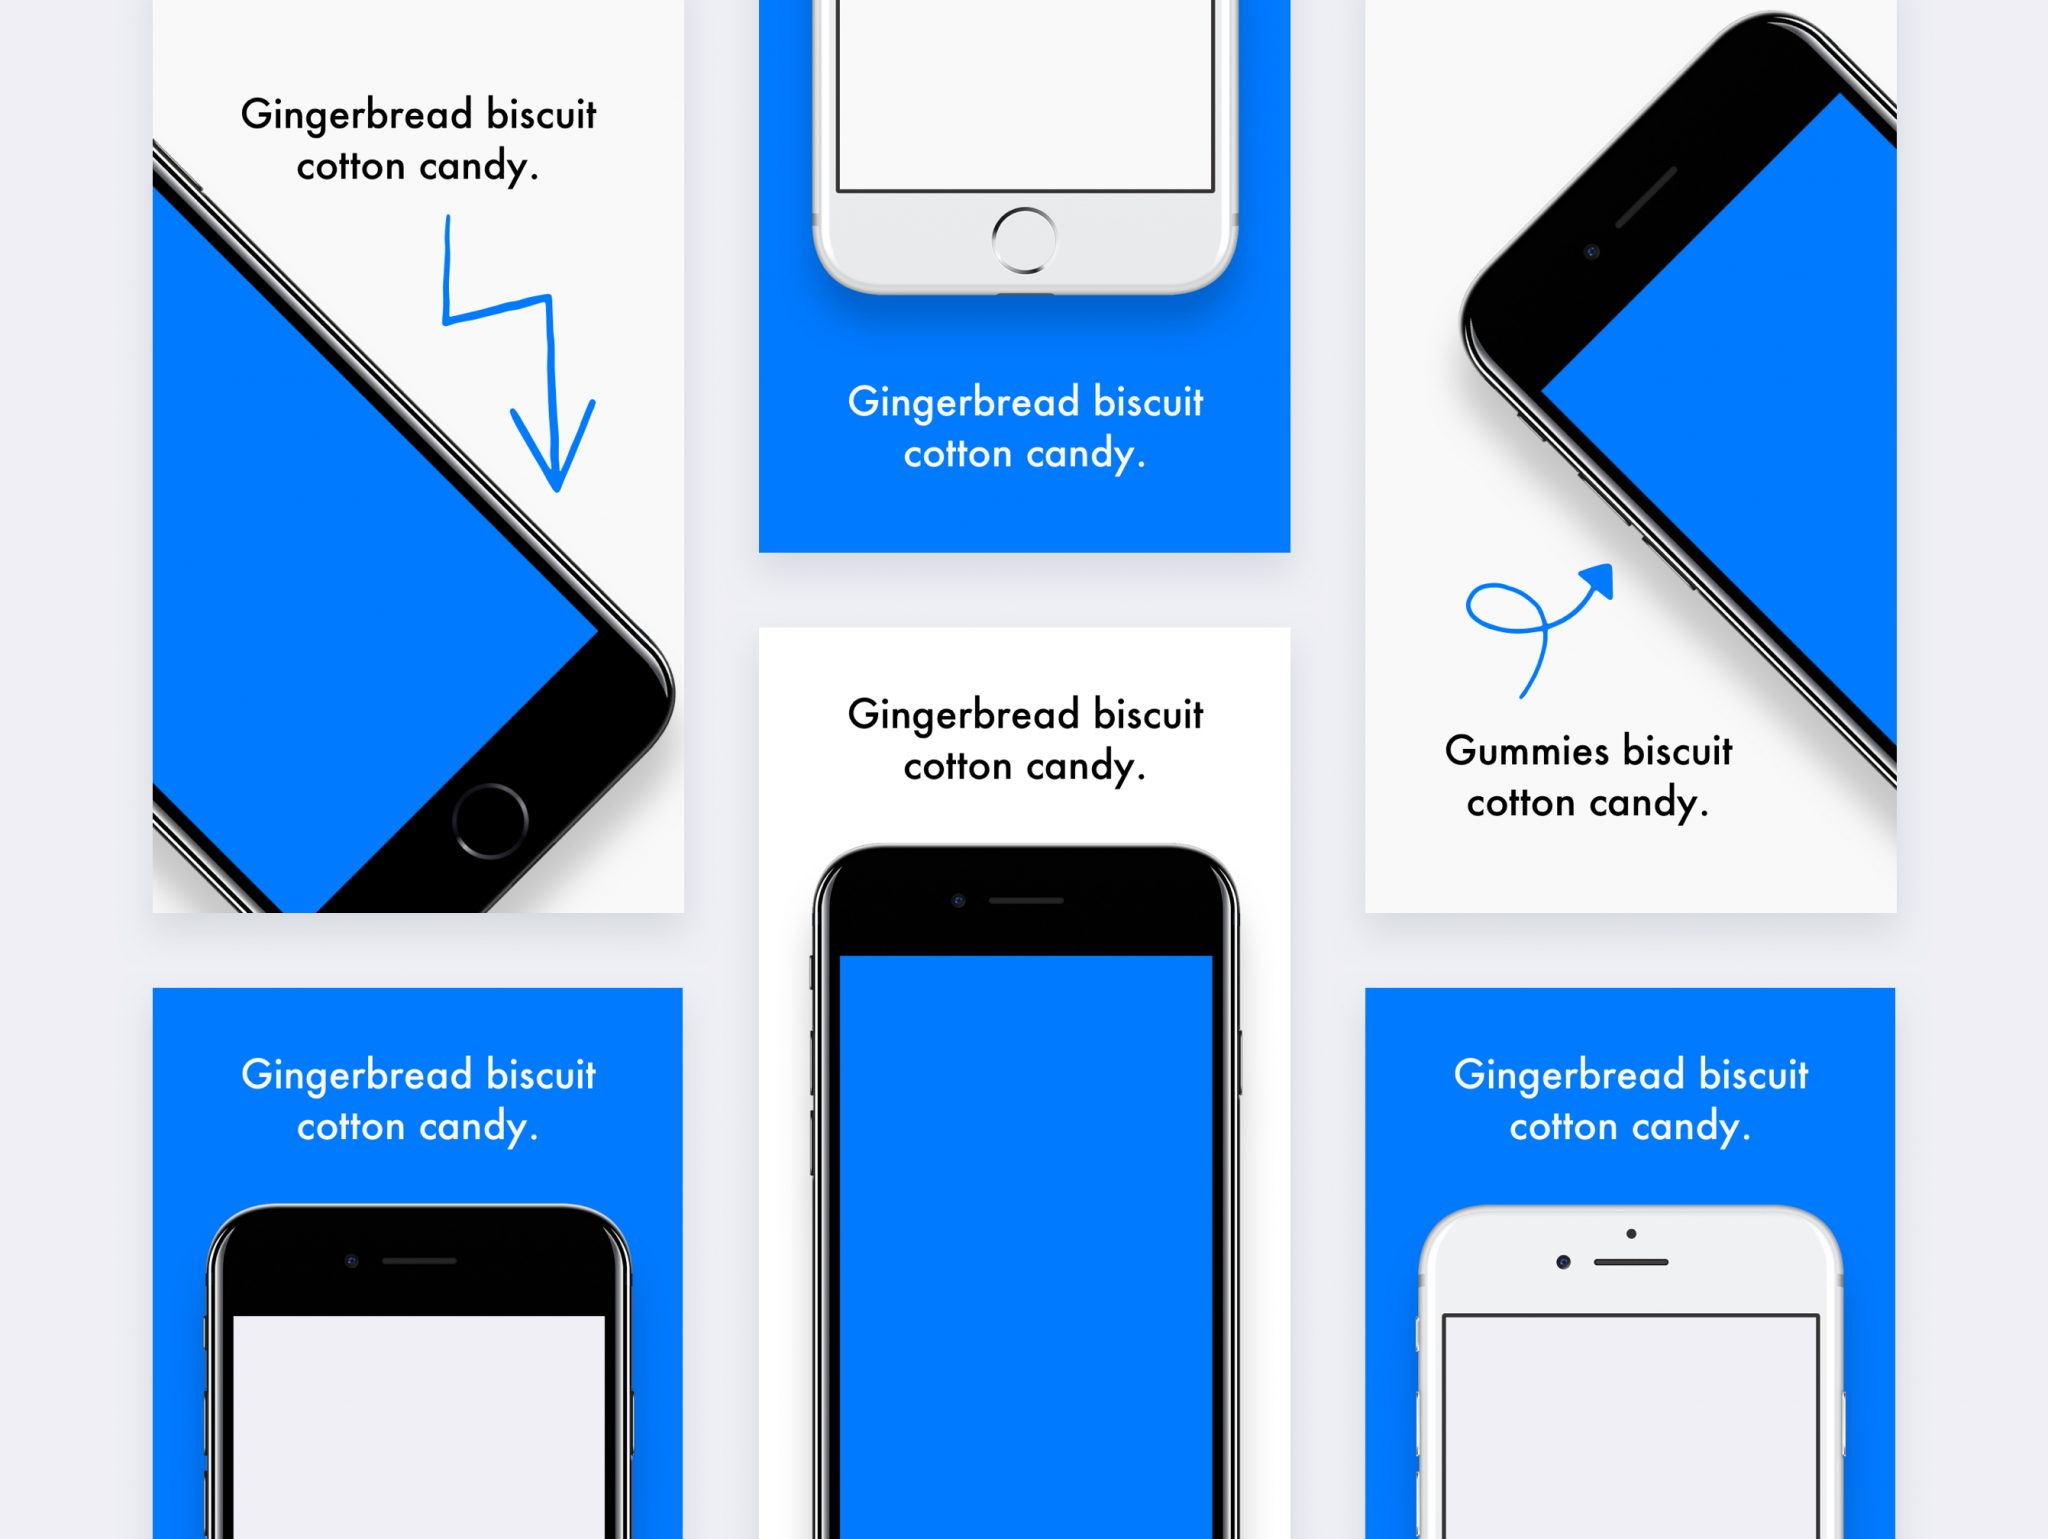 iPhone Preview for App Store Market